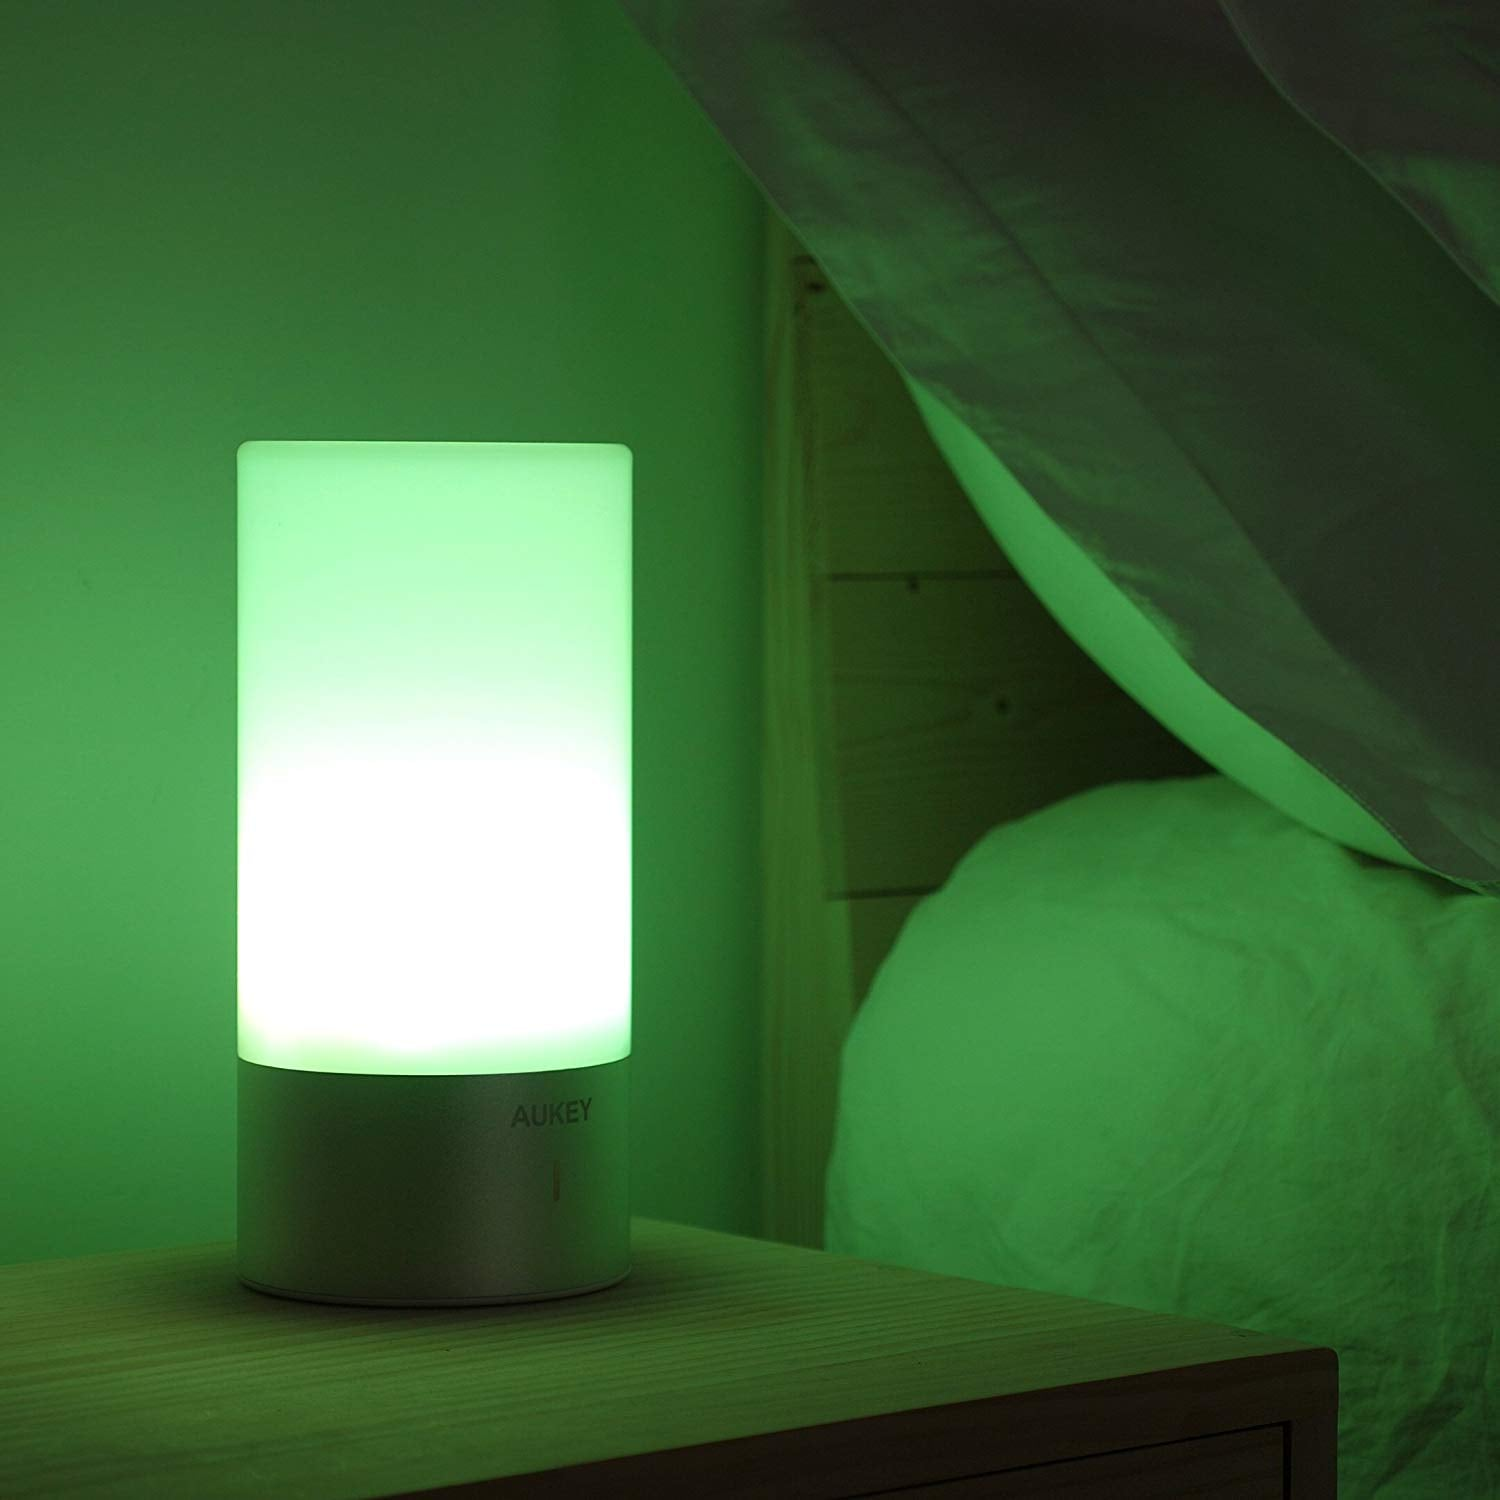 Aukey Touch Sensor Bedside Lamps Gadgets And Gizmos Galore 88 Cool Tech Gifts To Give To The Men In Your Life Popsugar News Photo 13